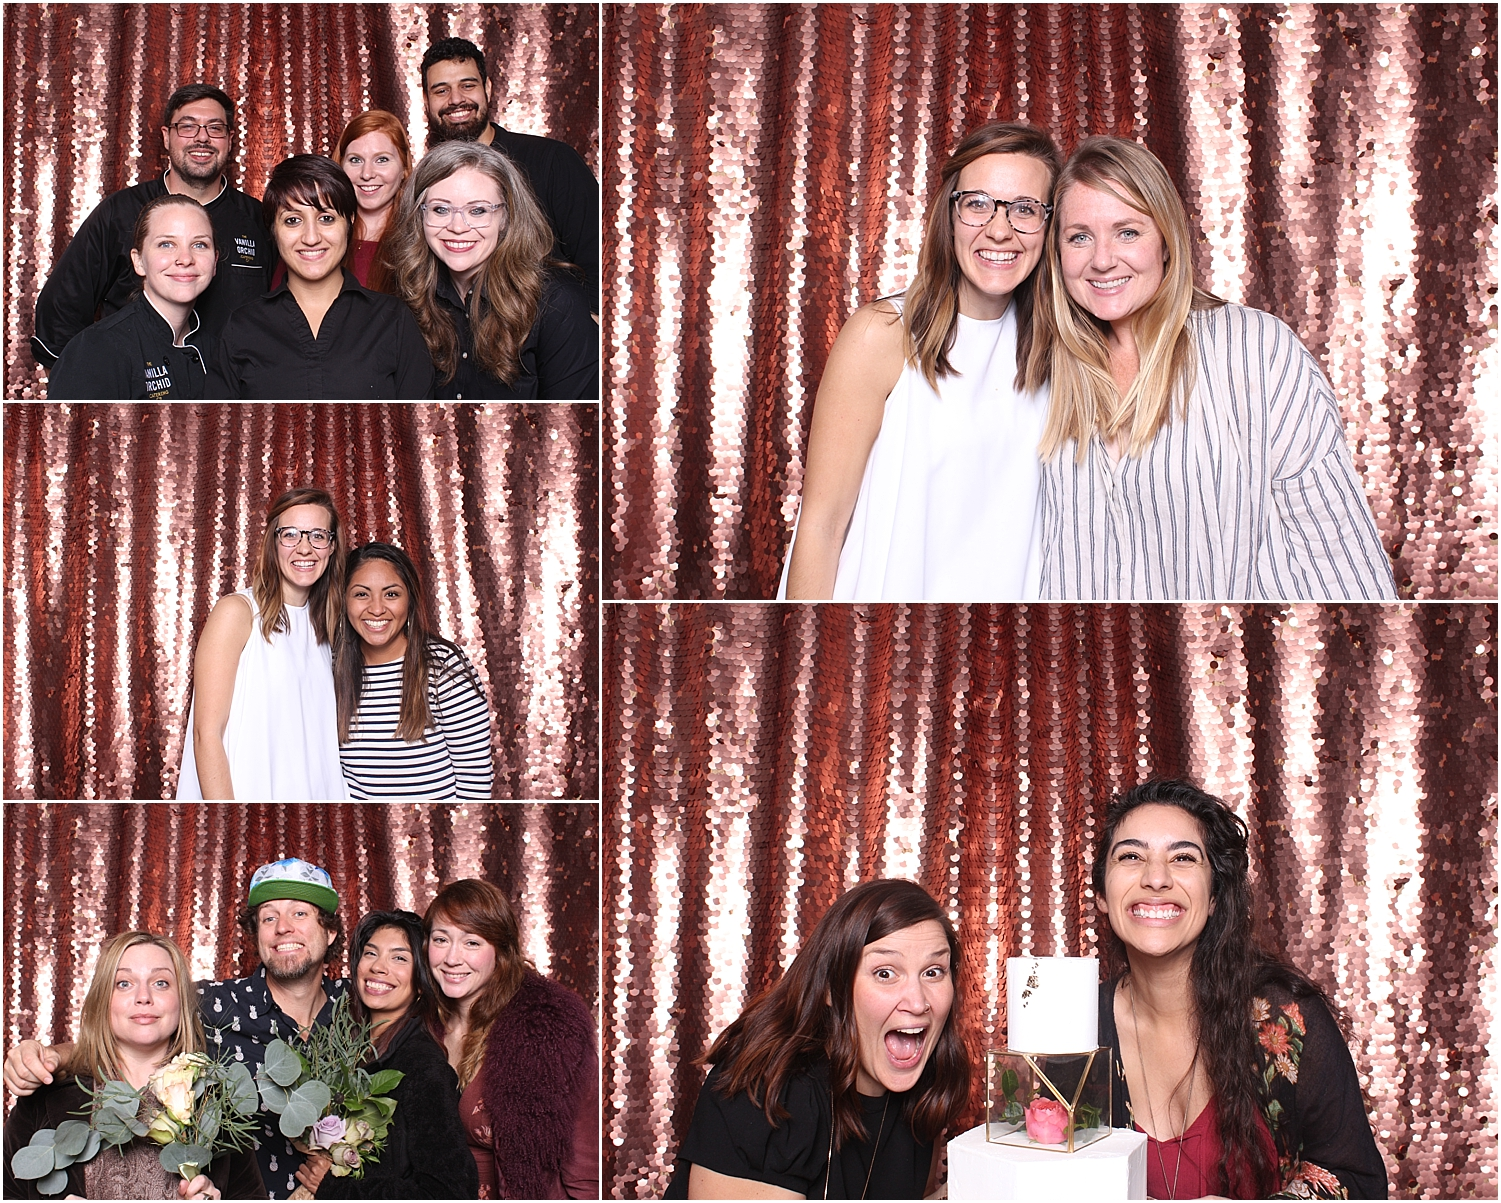 Best Austin photo booth corporate party wedding social media sparkly sequin backdrops step and repeat backdrop red carpet sxsw event social media integration luxury photo booth